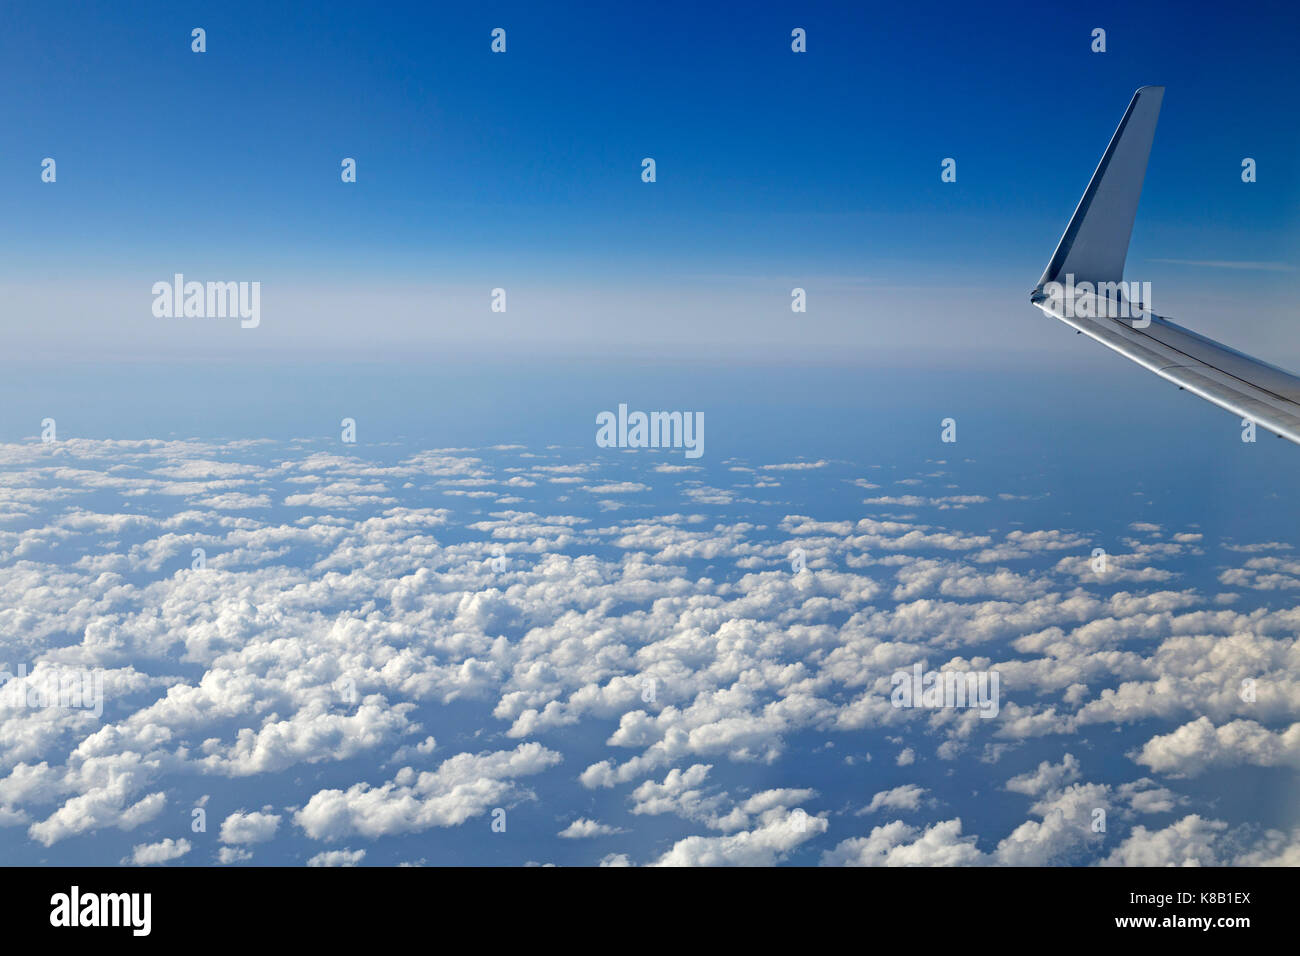 above the clouds between Majorca and Berlin - Stock Image